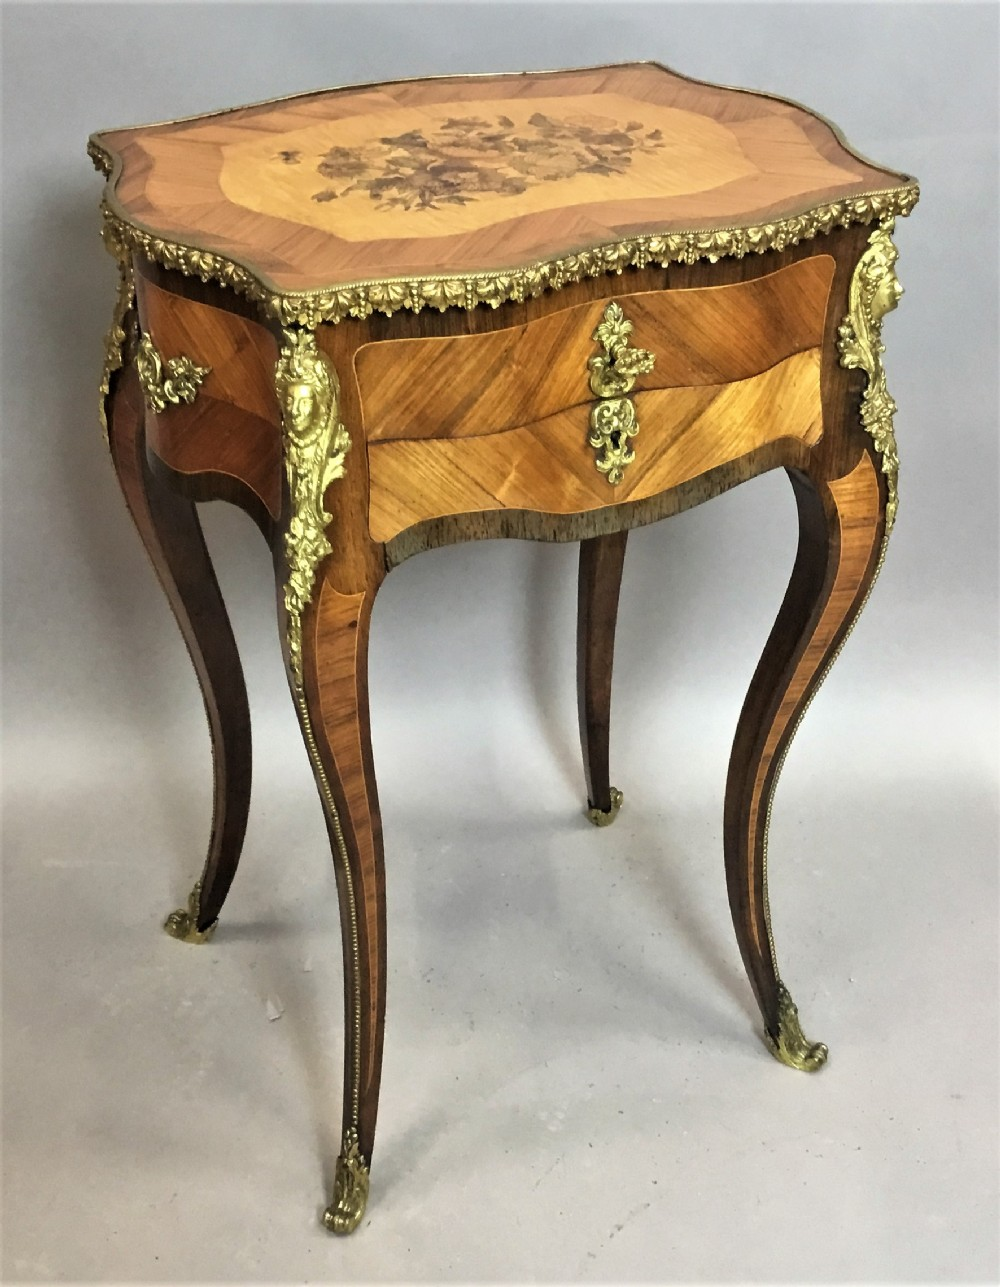 c19th french vanity table sewing table by tahan paris